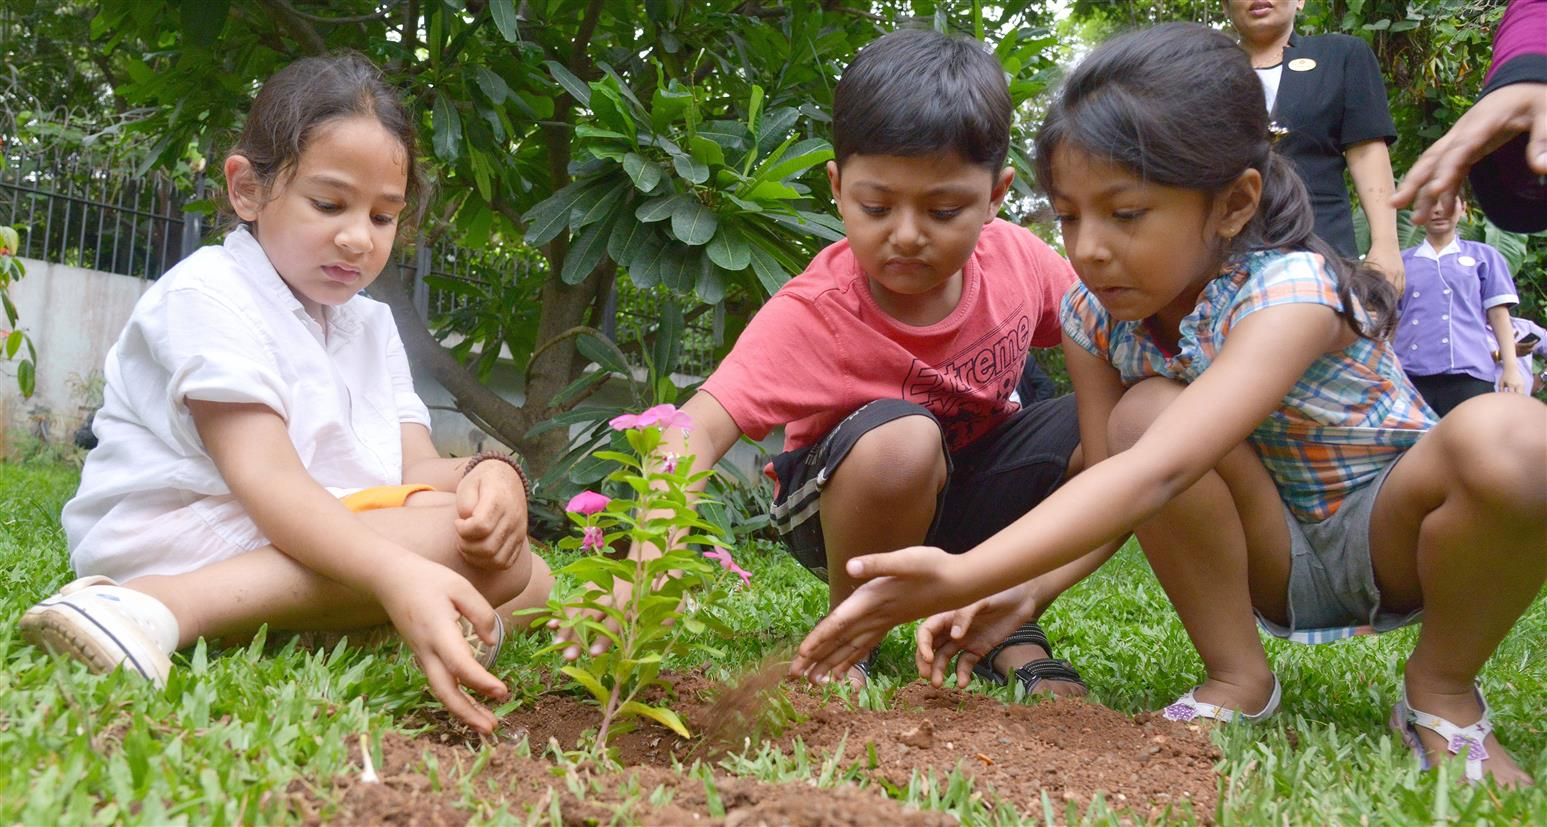 'Green Spaces May Influence Kids' BMI'